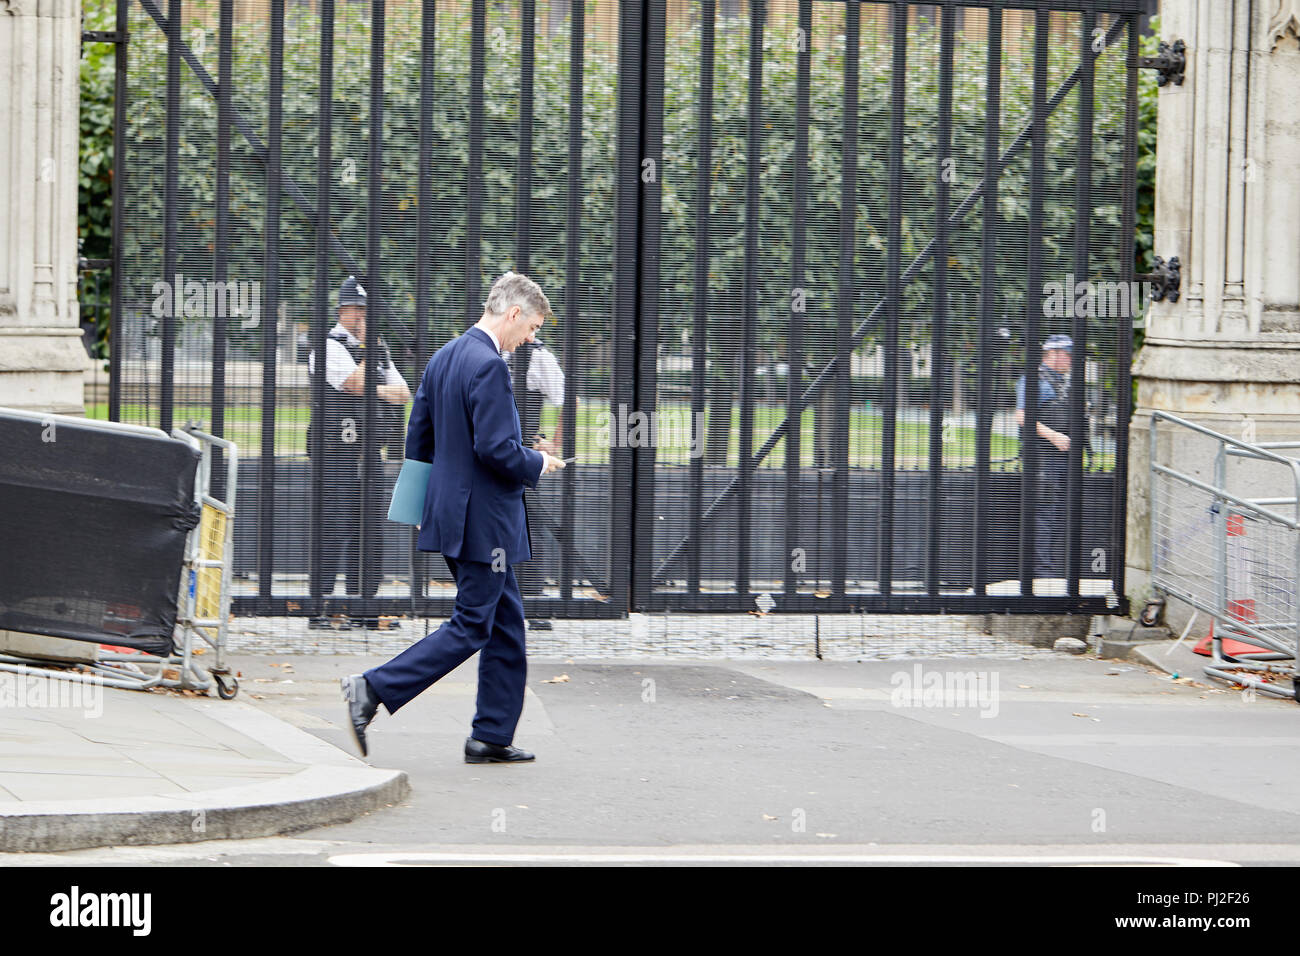 London, UK. 4th September 2018. British Conservative party politician and Member of Parliament Jacob Rees-Mogg on his phone passing the Houses of Parliament today. Credit: Kevin Frost/Alamy Live News - Stock Image